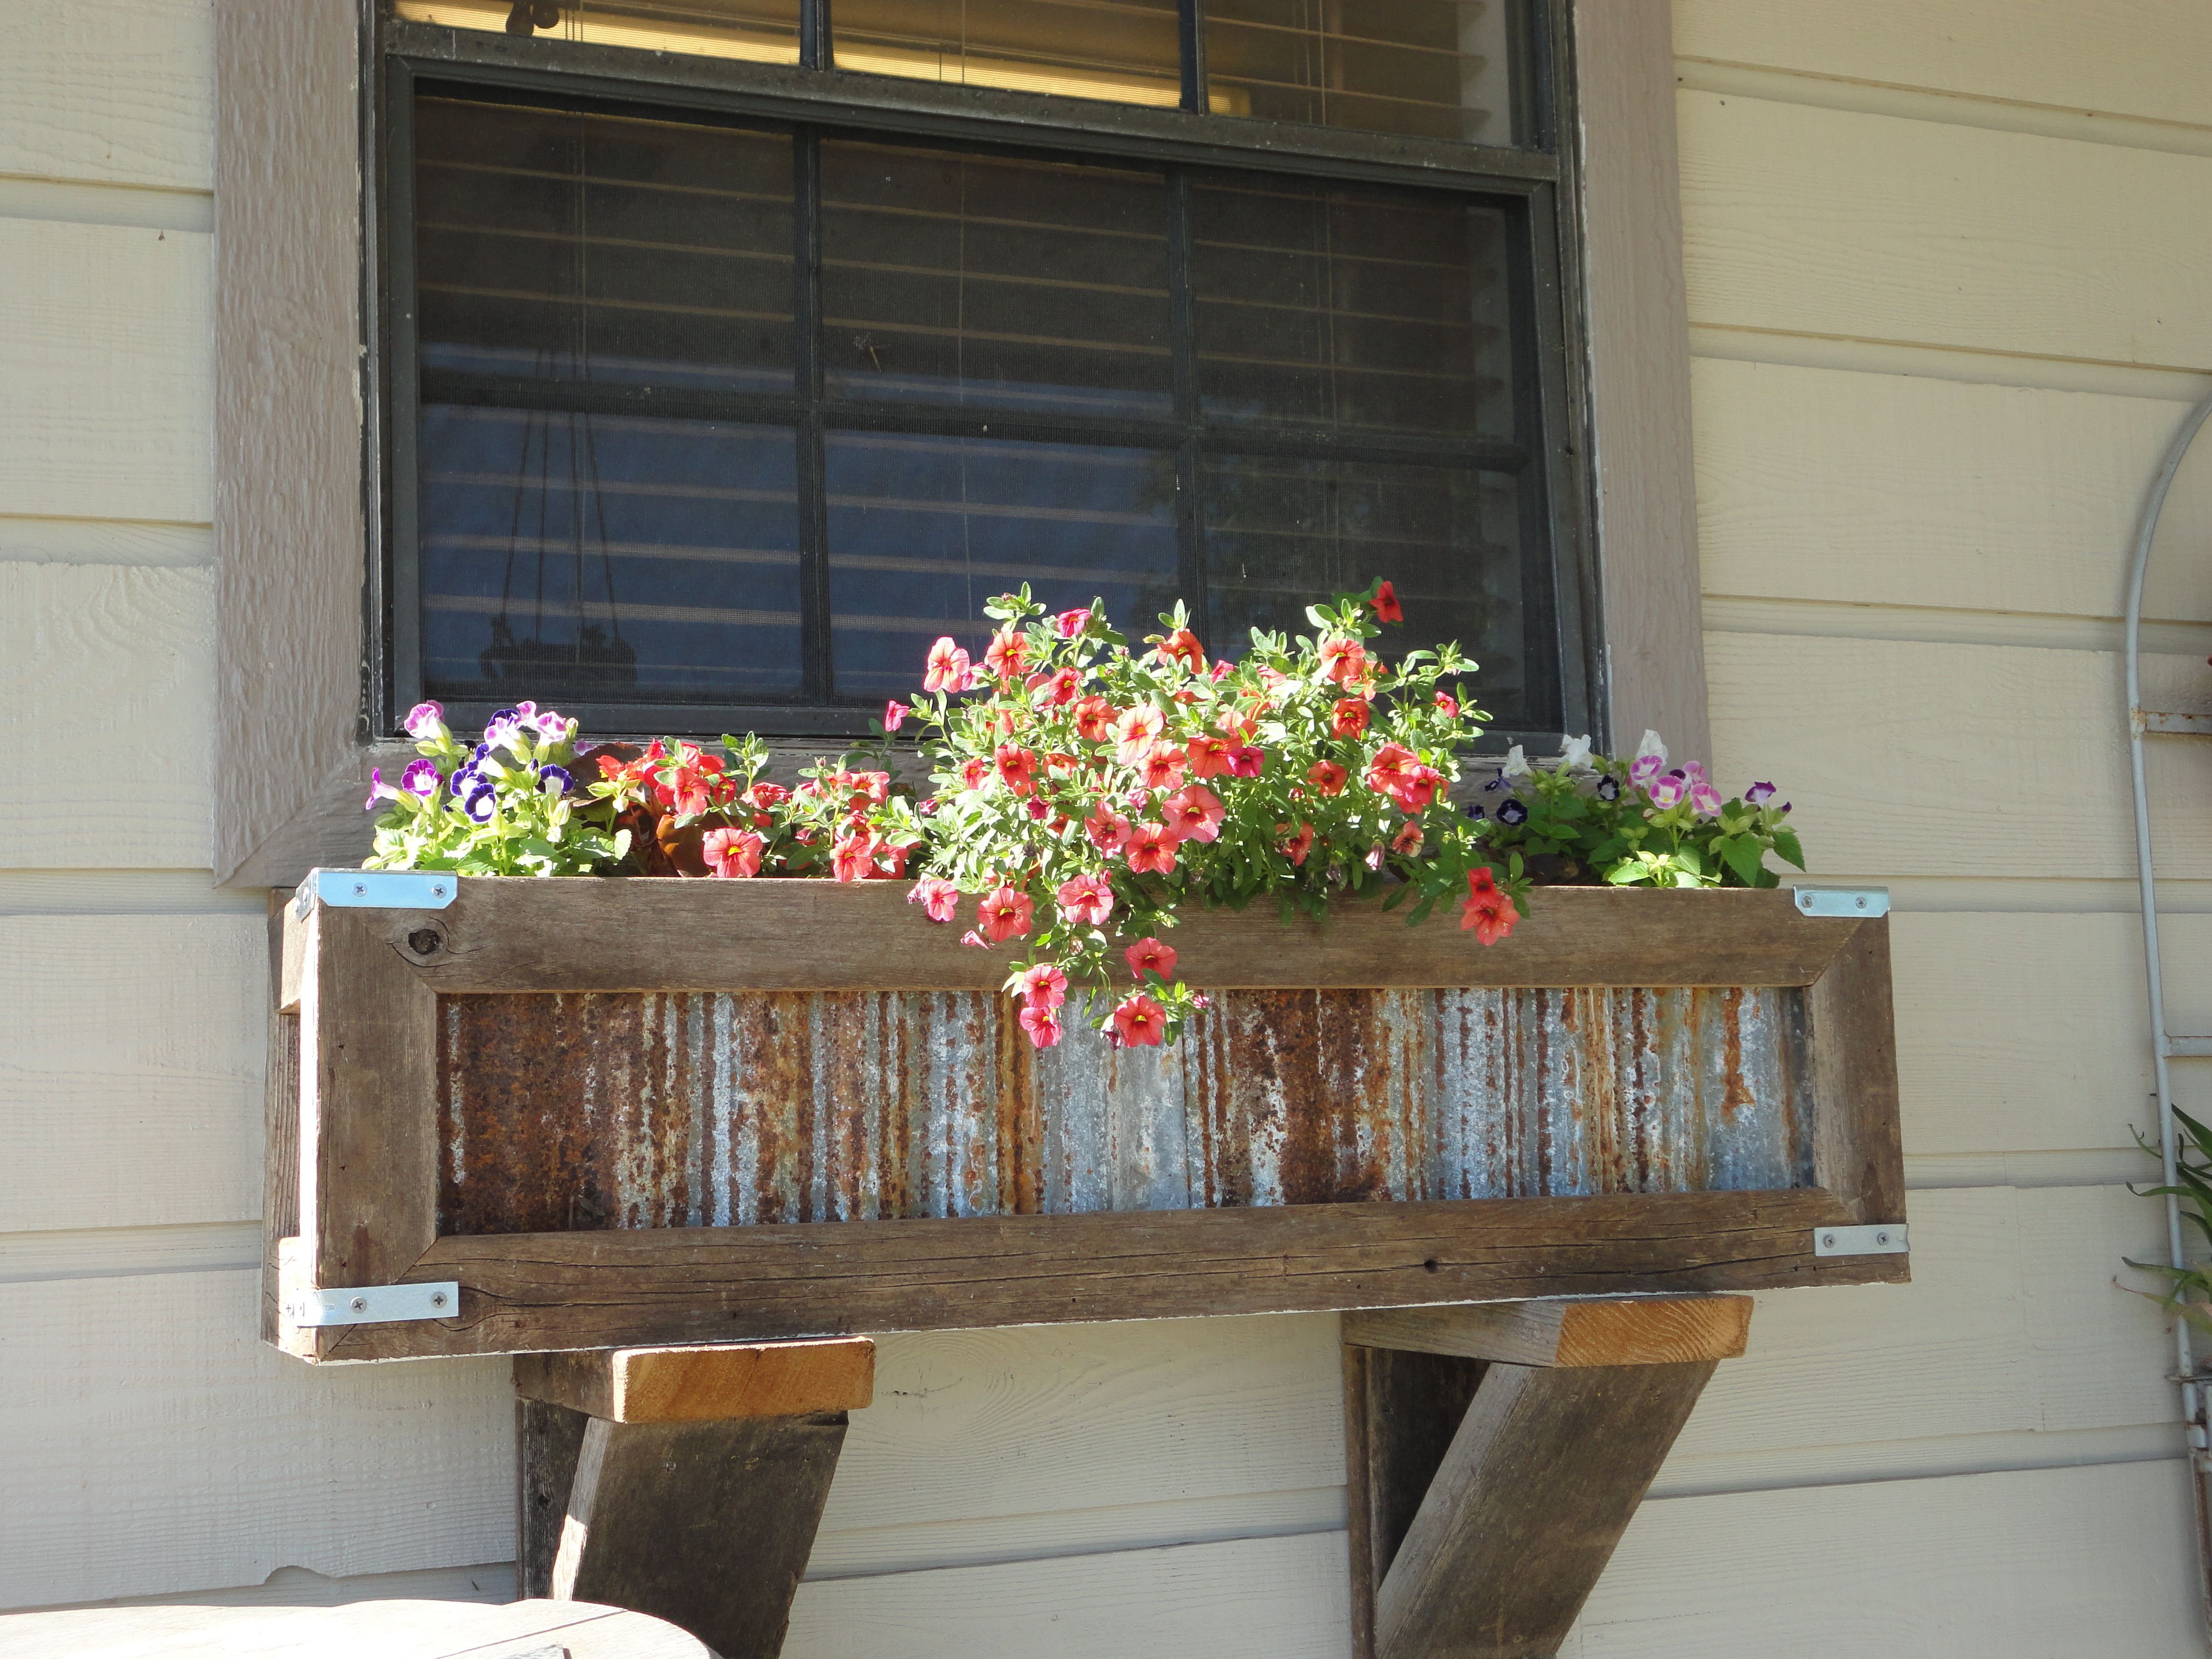 Handcrafted Rustic Window Box Planter For Kitchen Window Crafted Out Of Reclaimed Cedar And Tin To Order Cont Window Planter Boxes Window Crafts Rustic Window